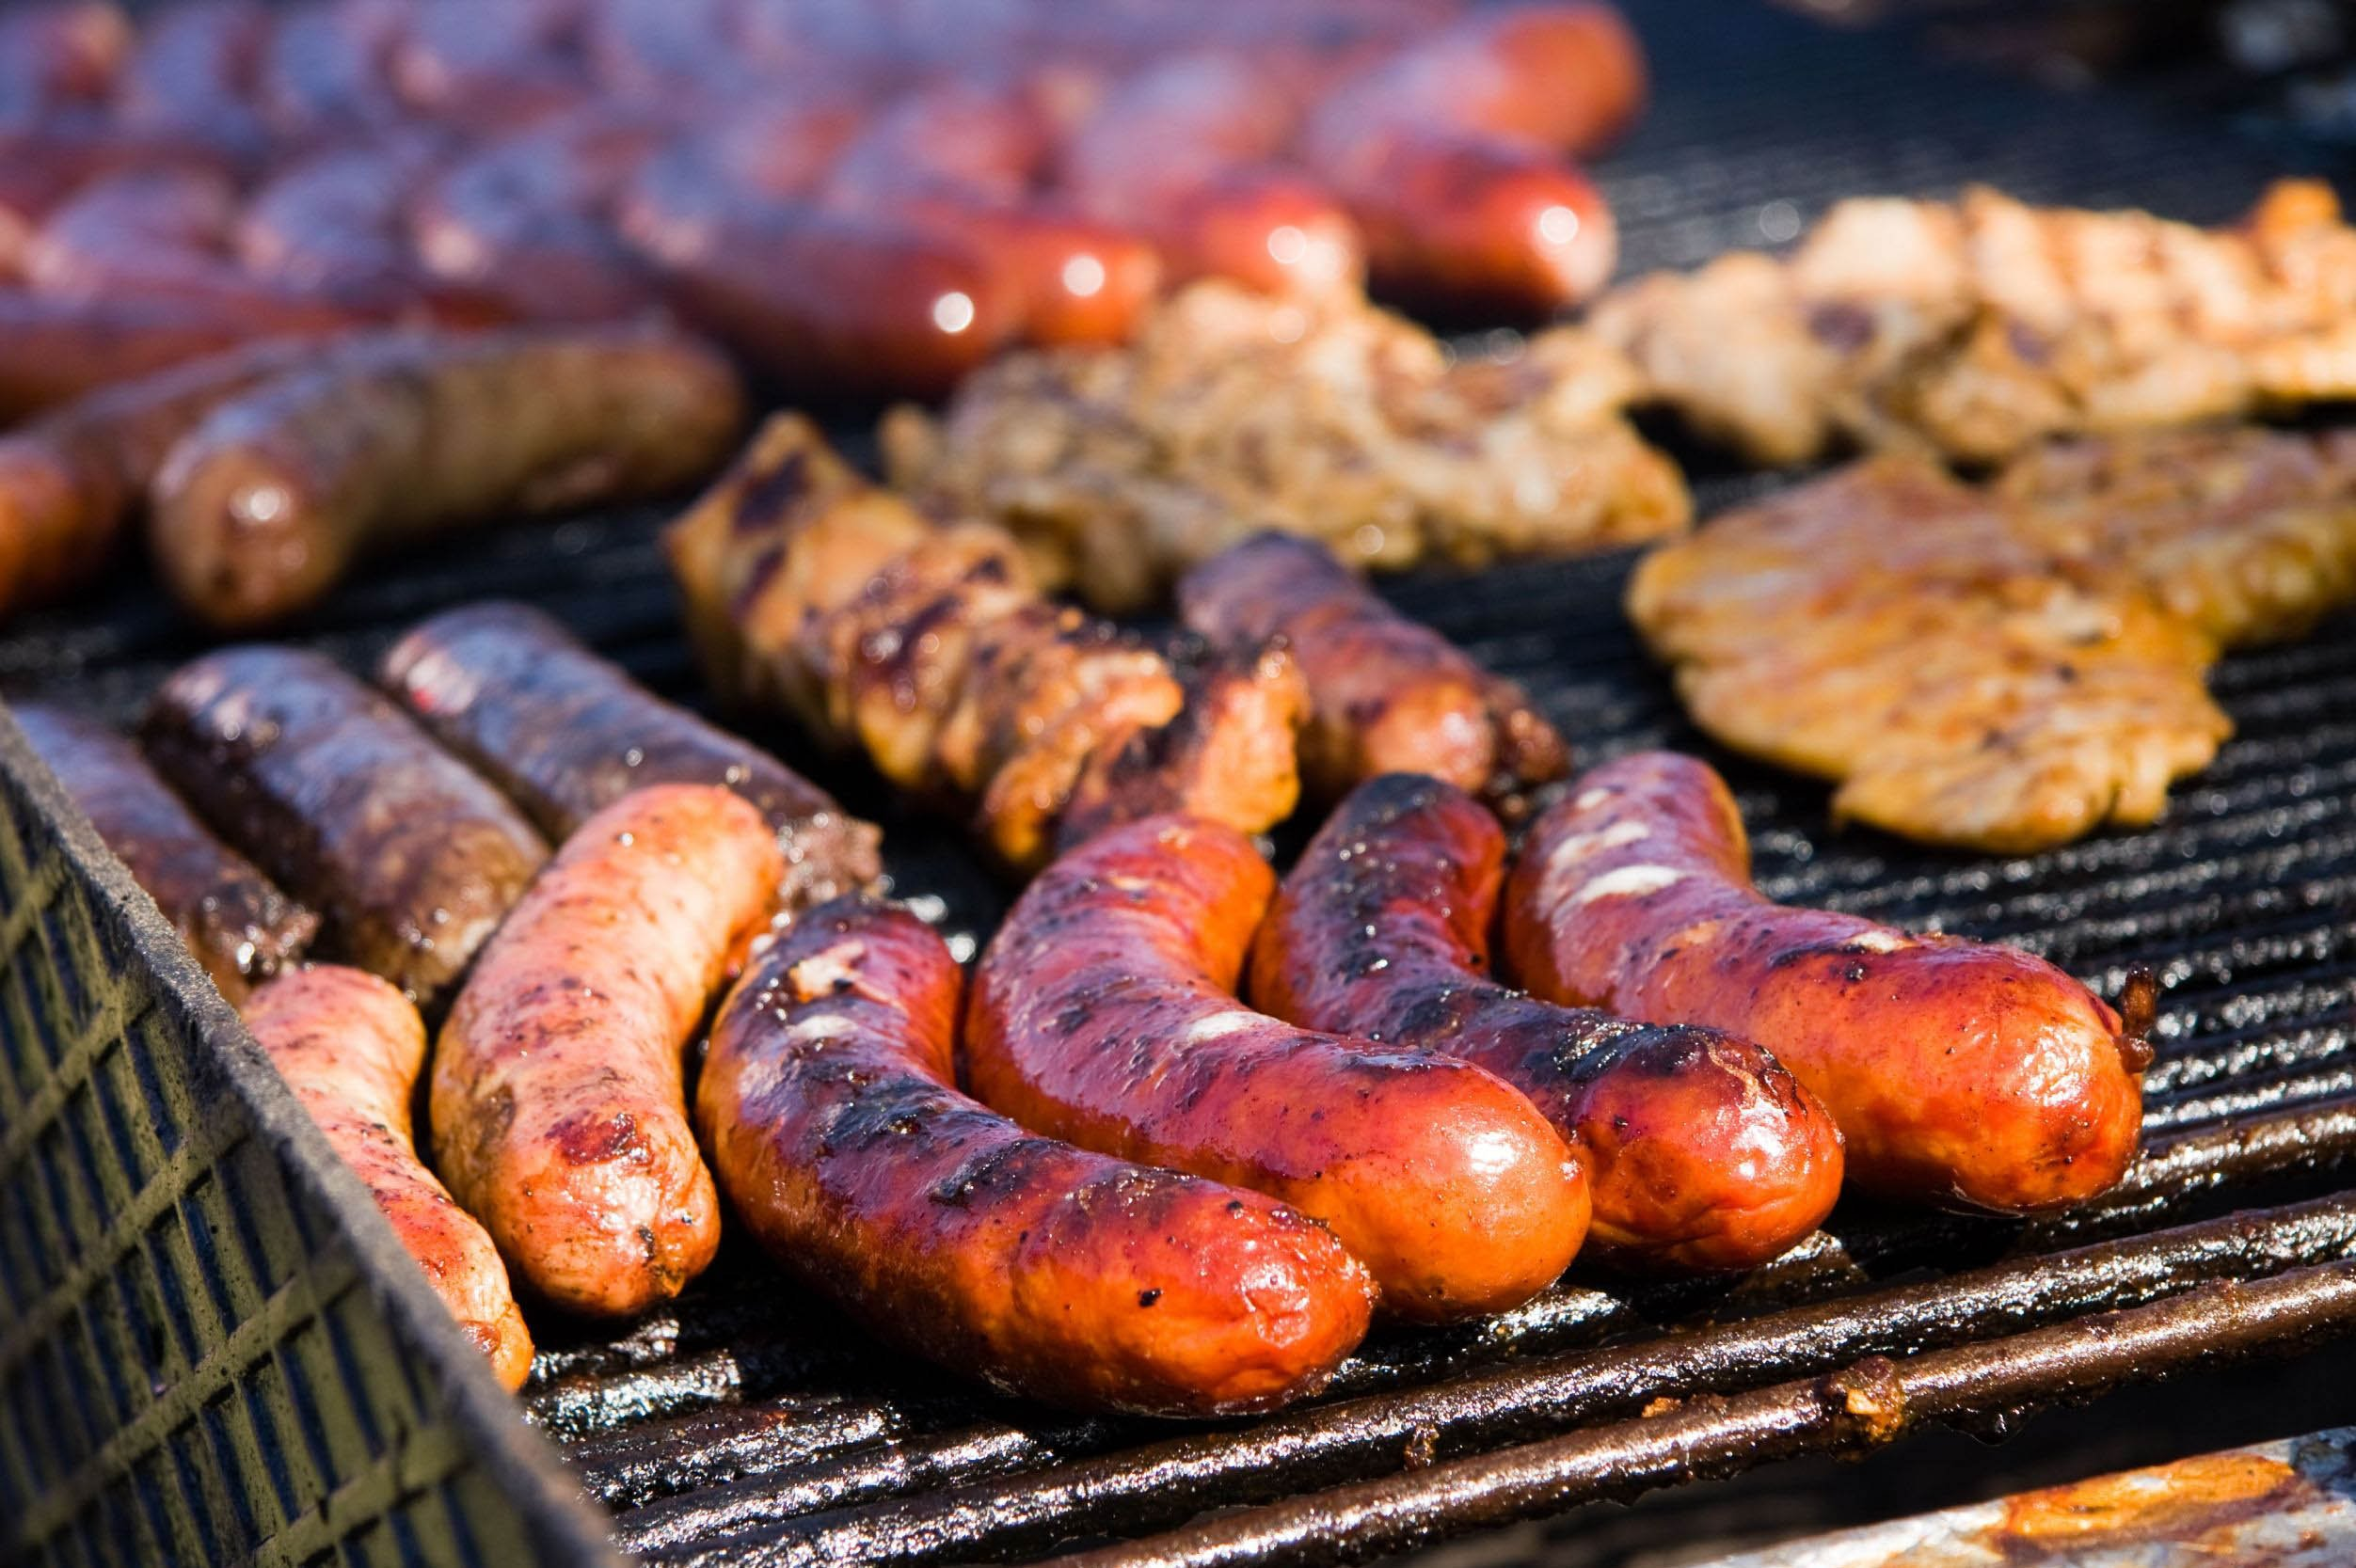 grillled-meat-united-states